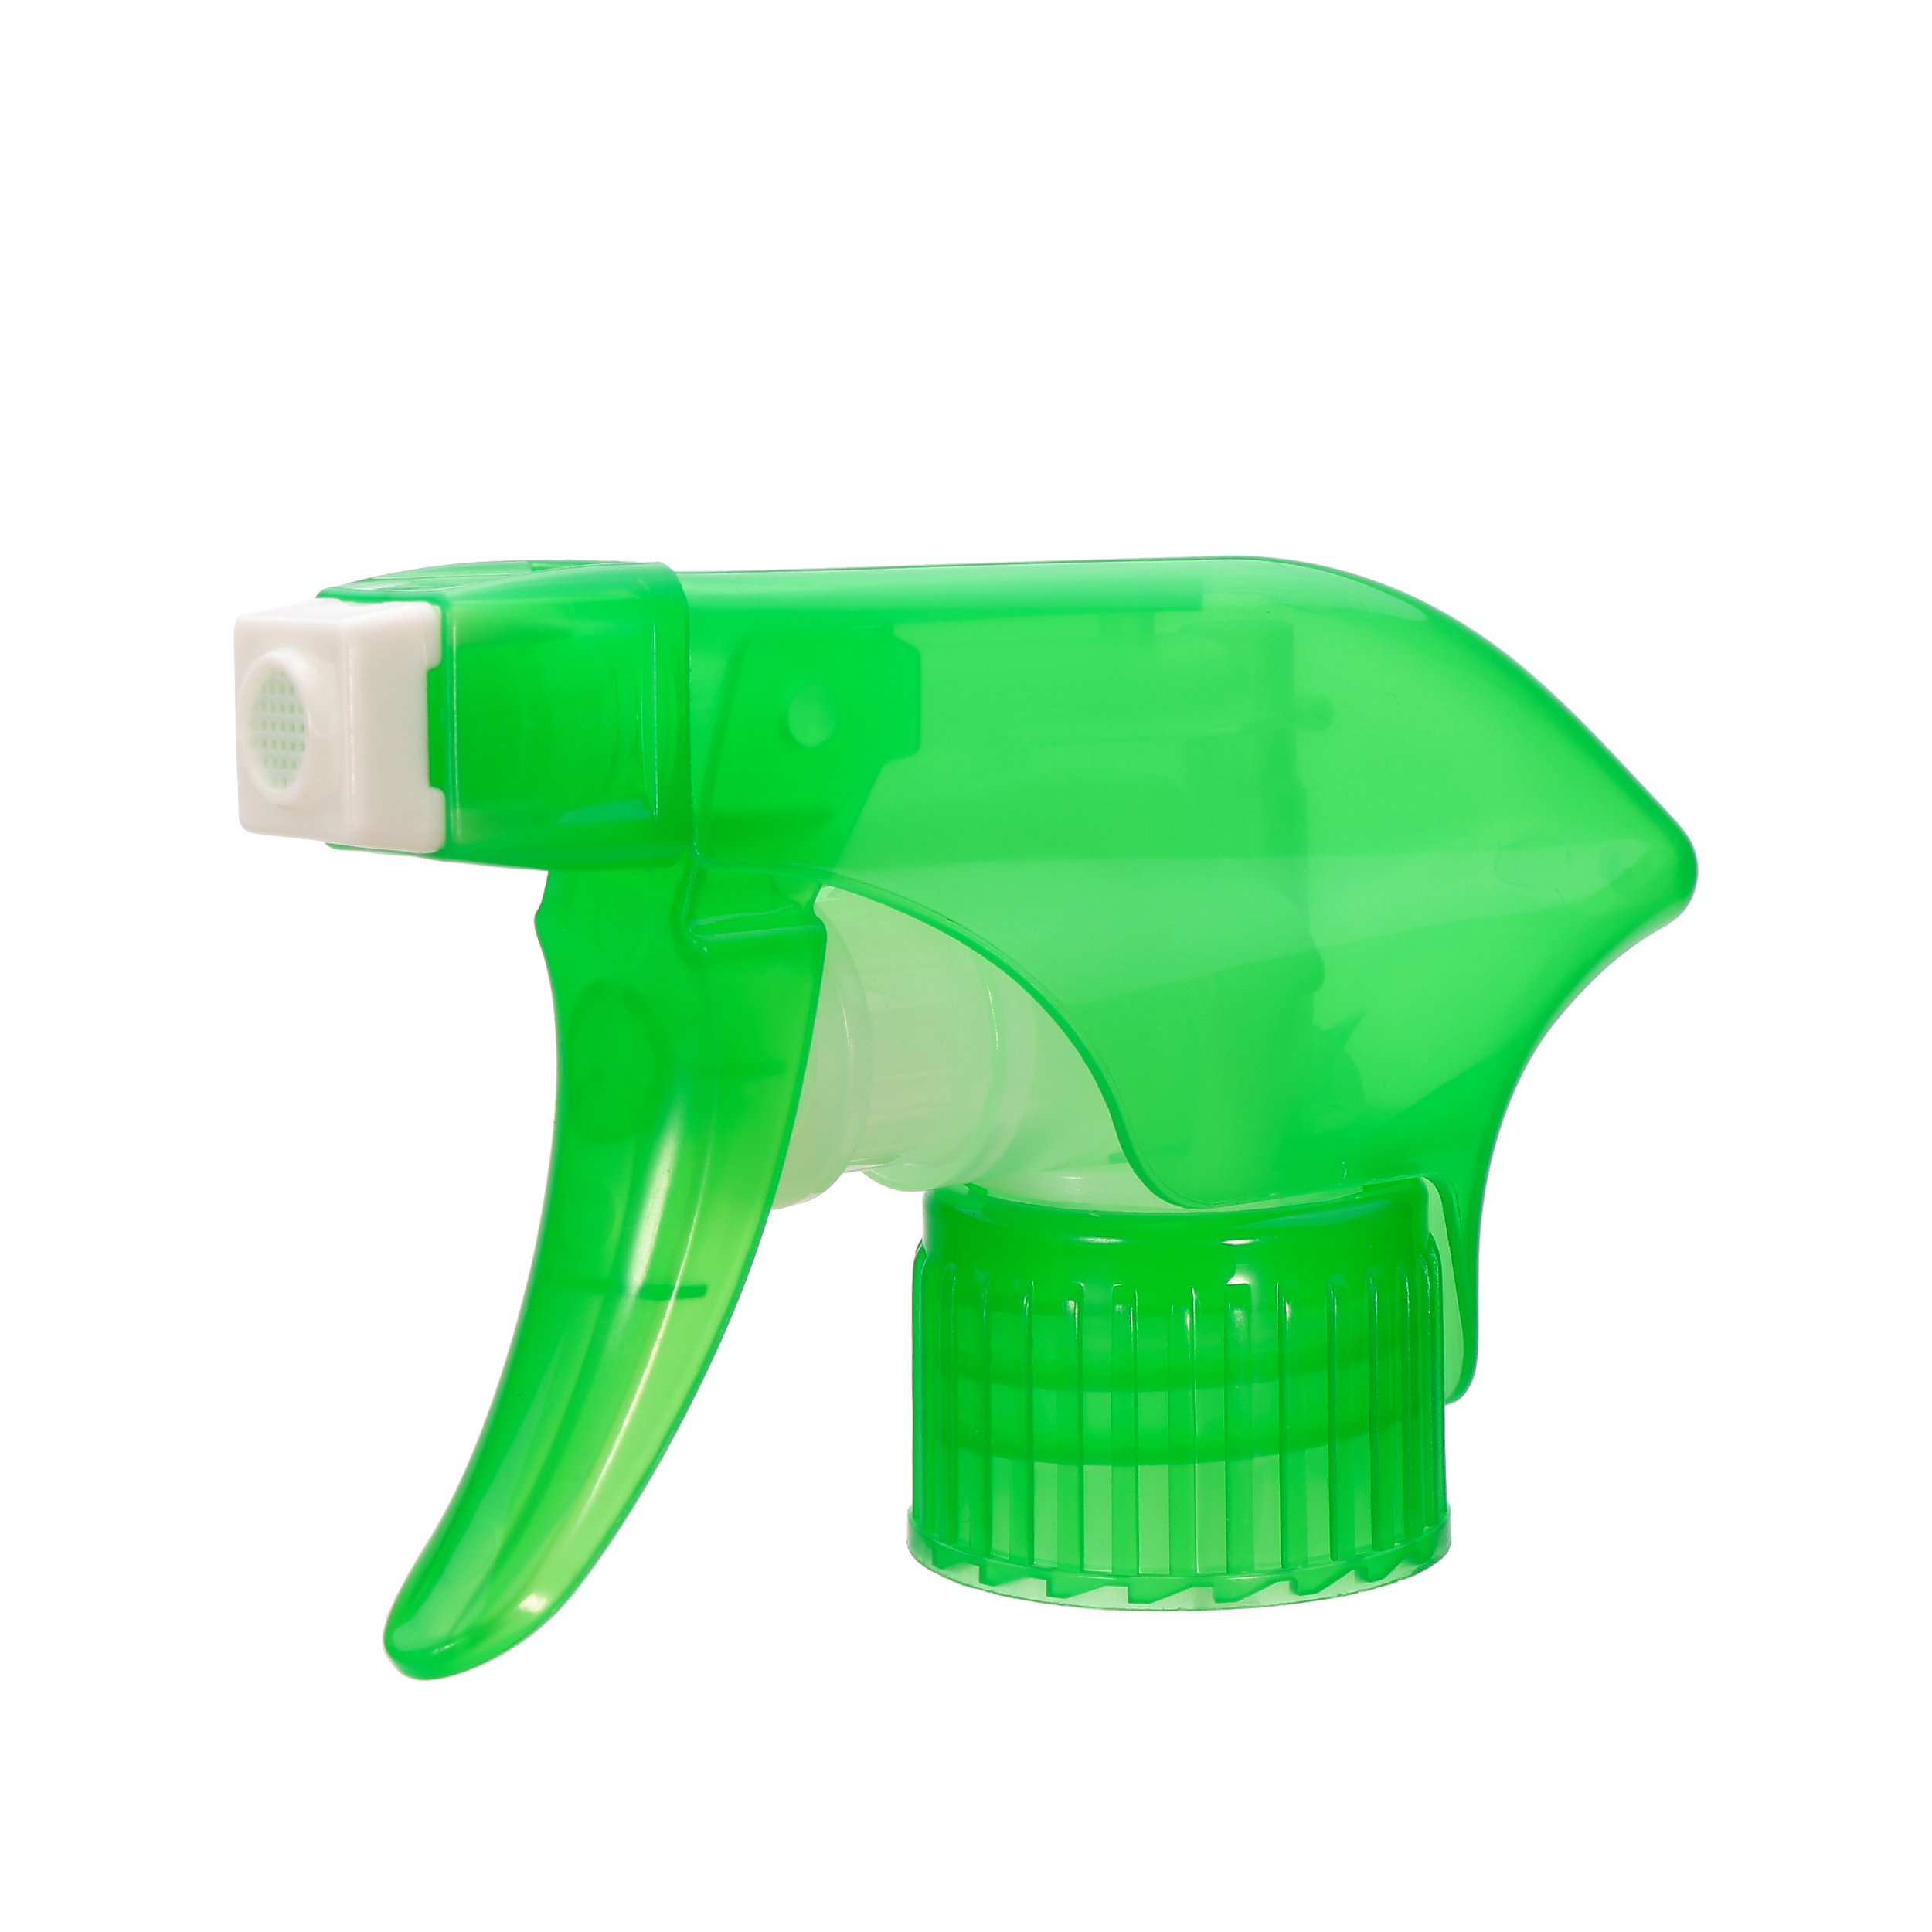 28mm different nozzles foaming trigger sprayer for 500ml bottle